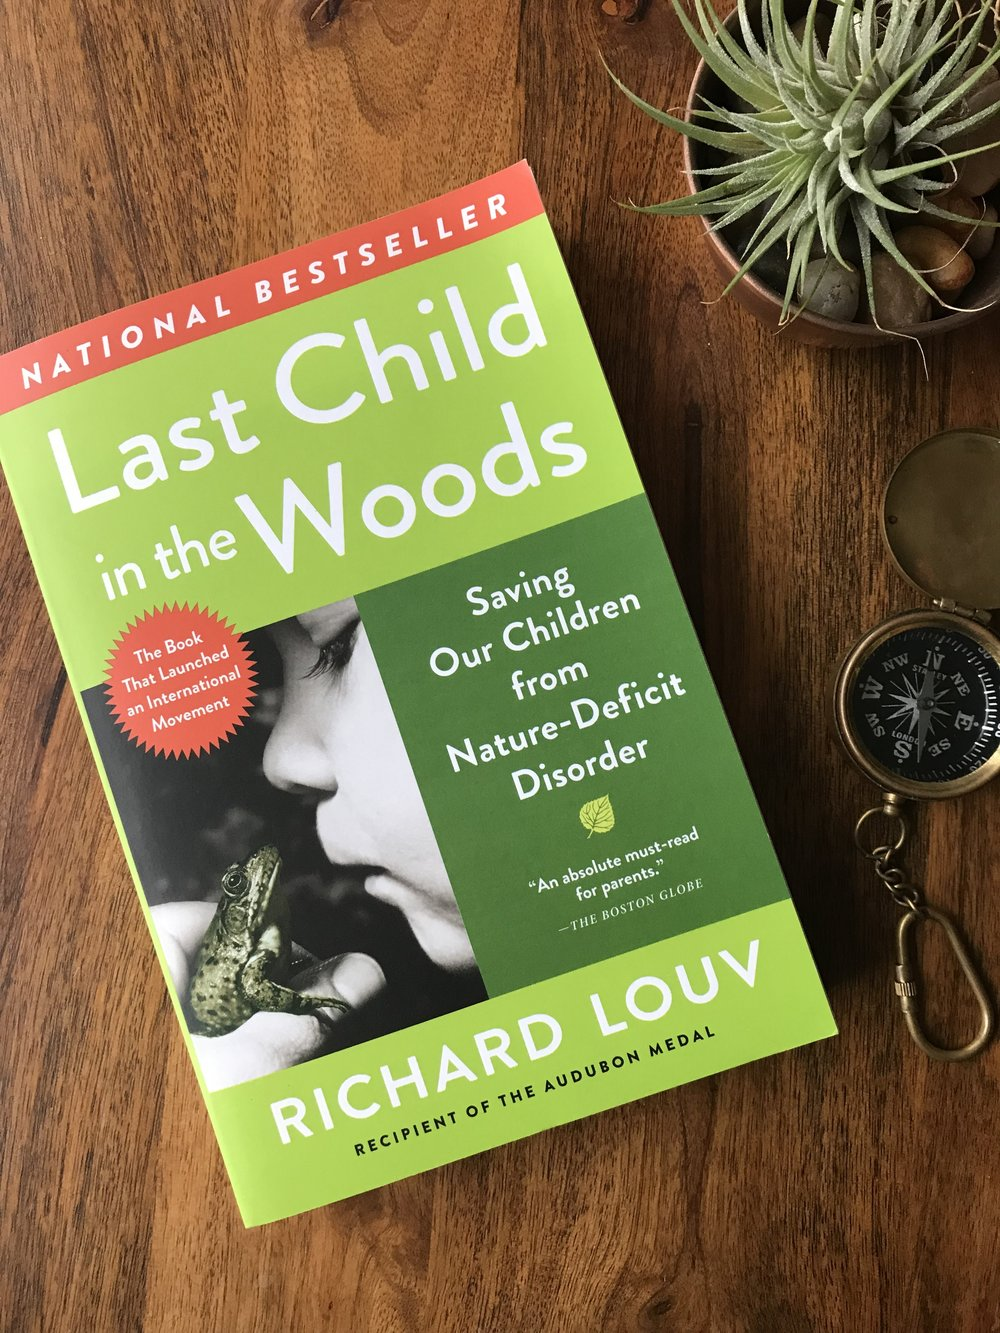 The Last Child in the Woods - a Nature-Loving Mama's Reading List from the Dear Summit Blog